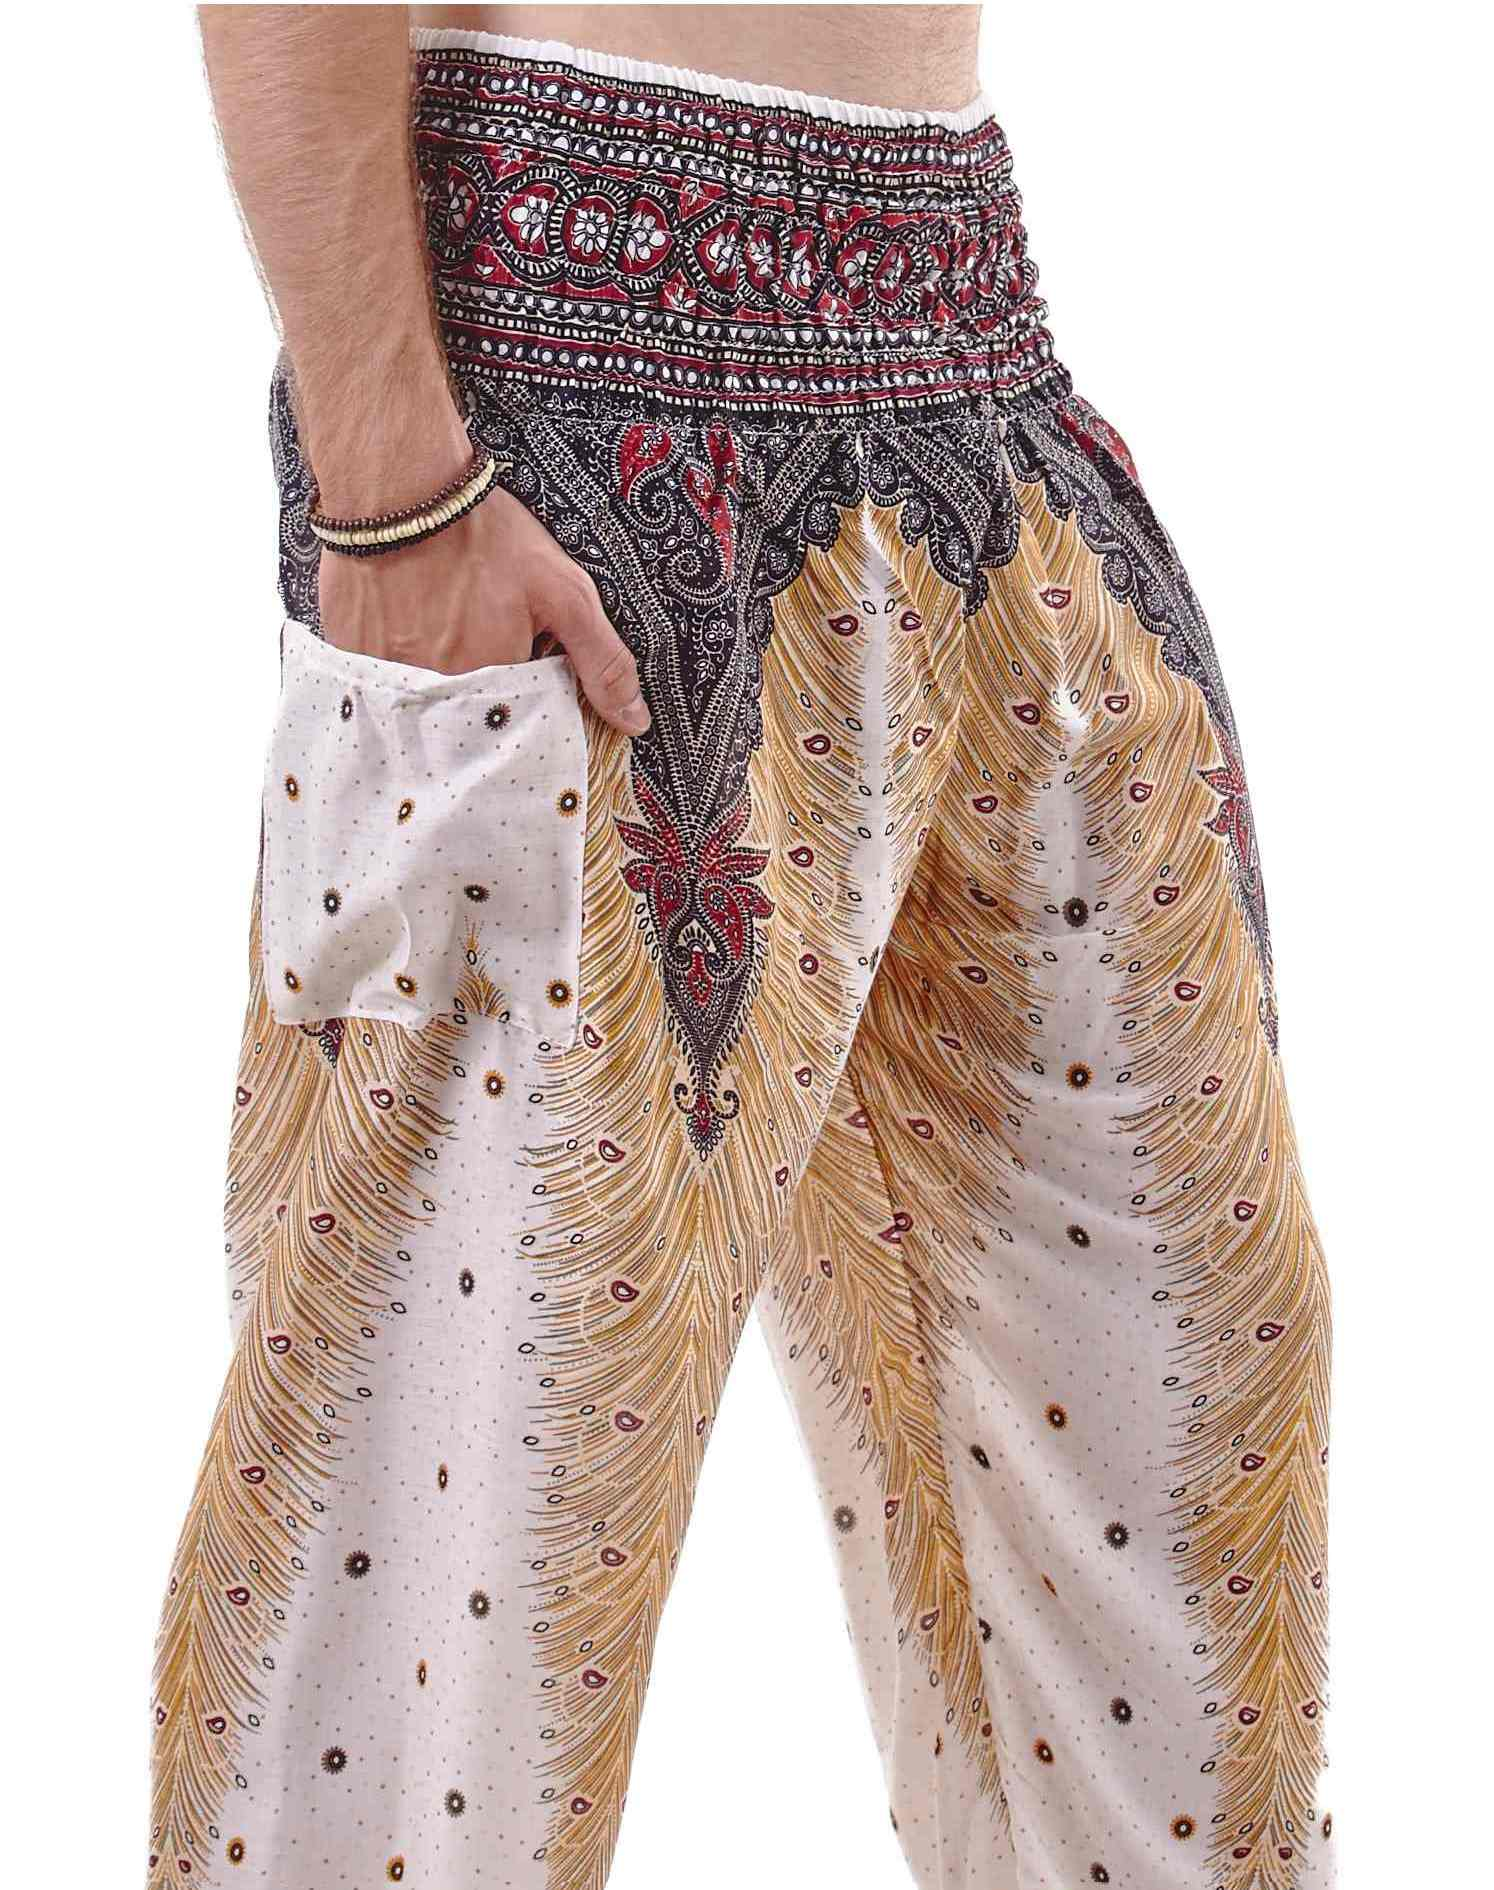 Harem Pants. Check out that new got-to-have-it trend —a pair of harem pants! Look for the trademark elastic ankles and dropped waist for unmistakably cool style that goes anywhere (really!).